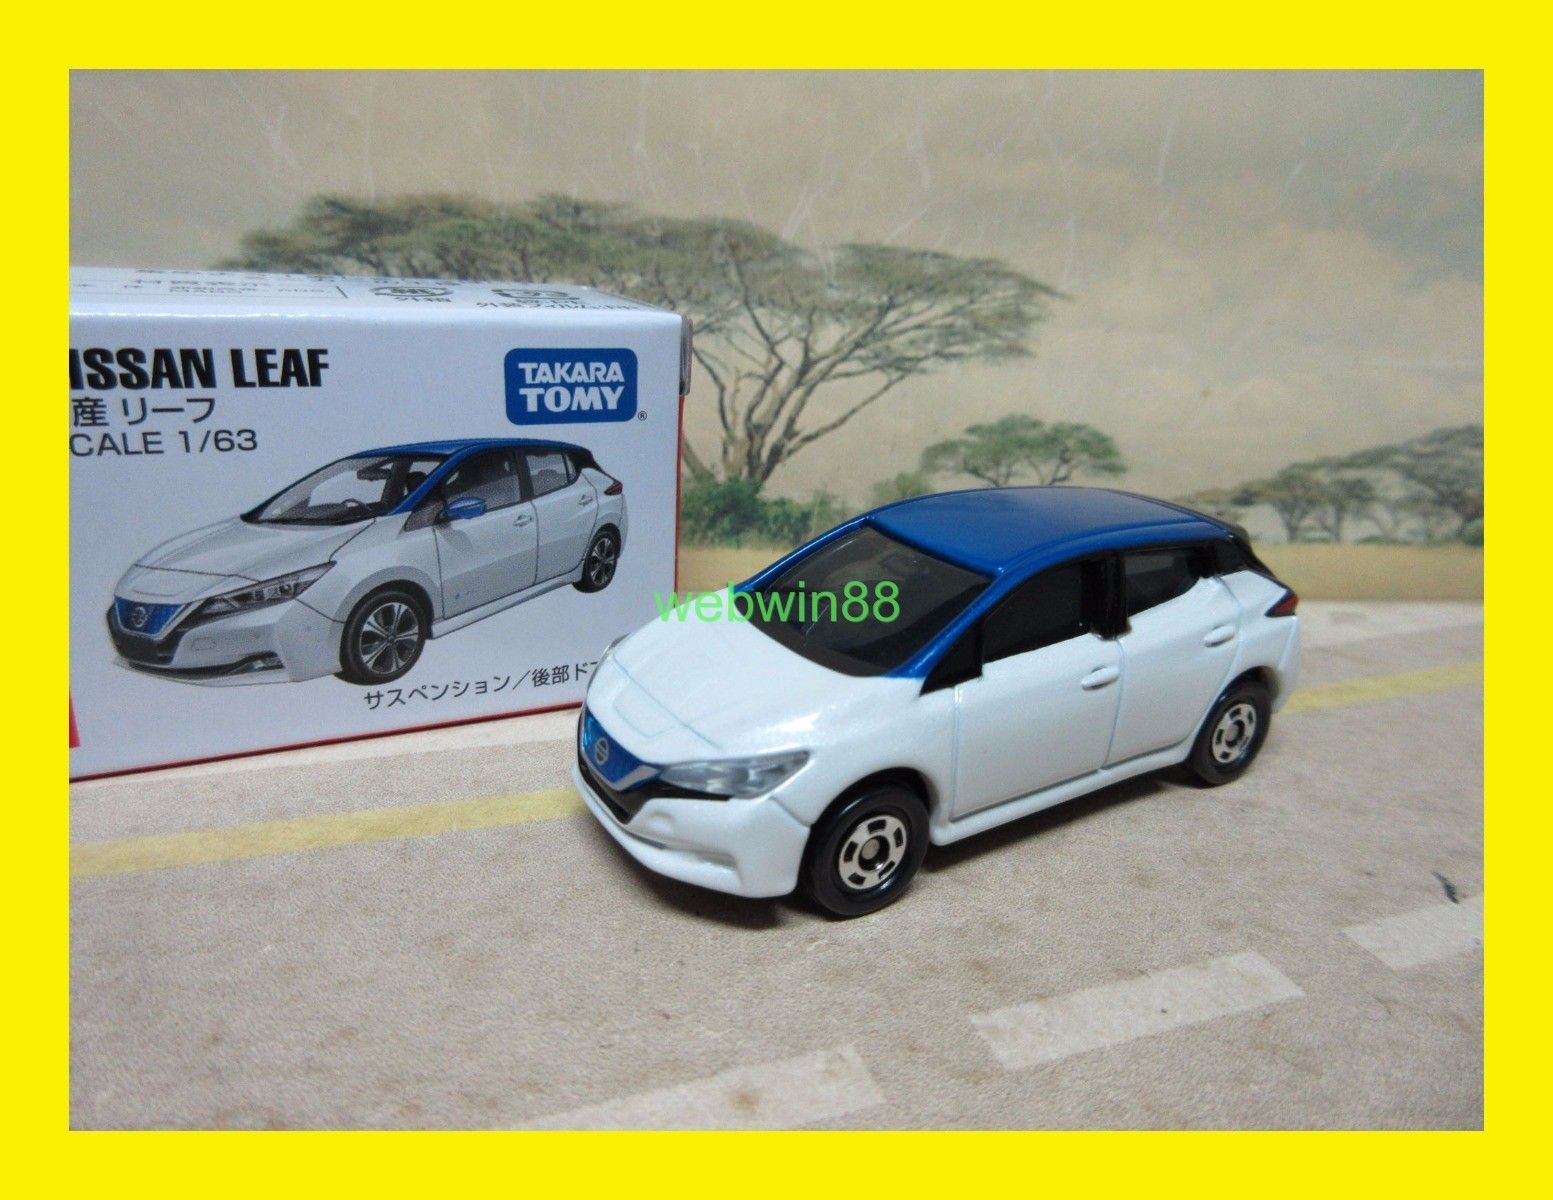 Awesome Oct 2017 93 Nissan Leaf Tomica Takara Tomy 2018 2019 24carshop